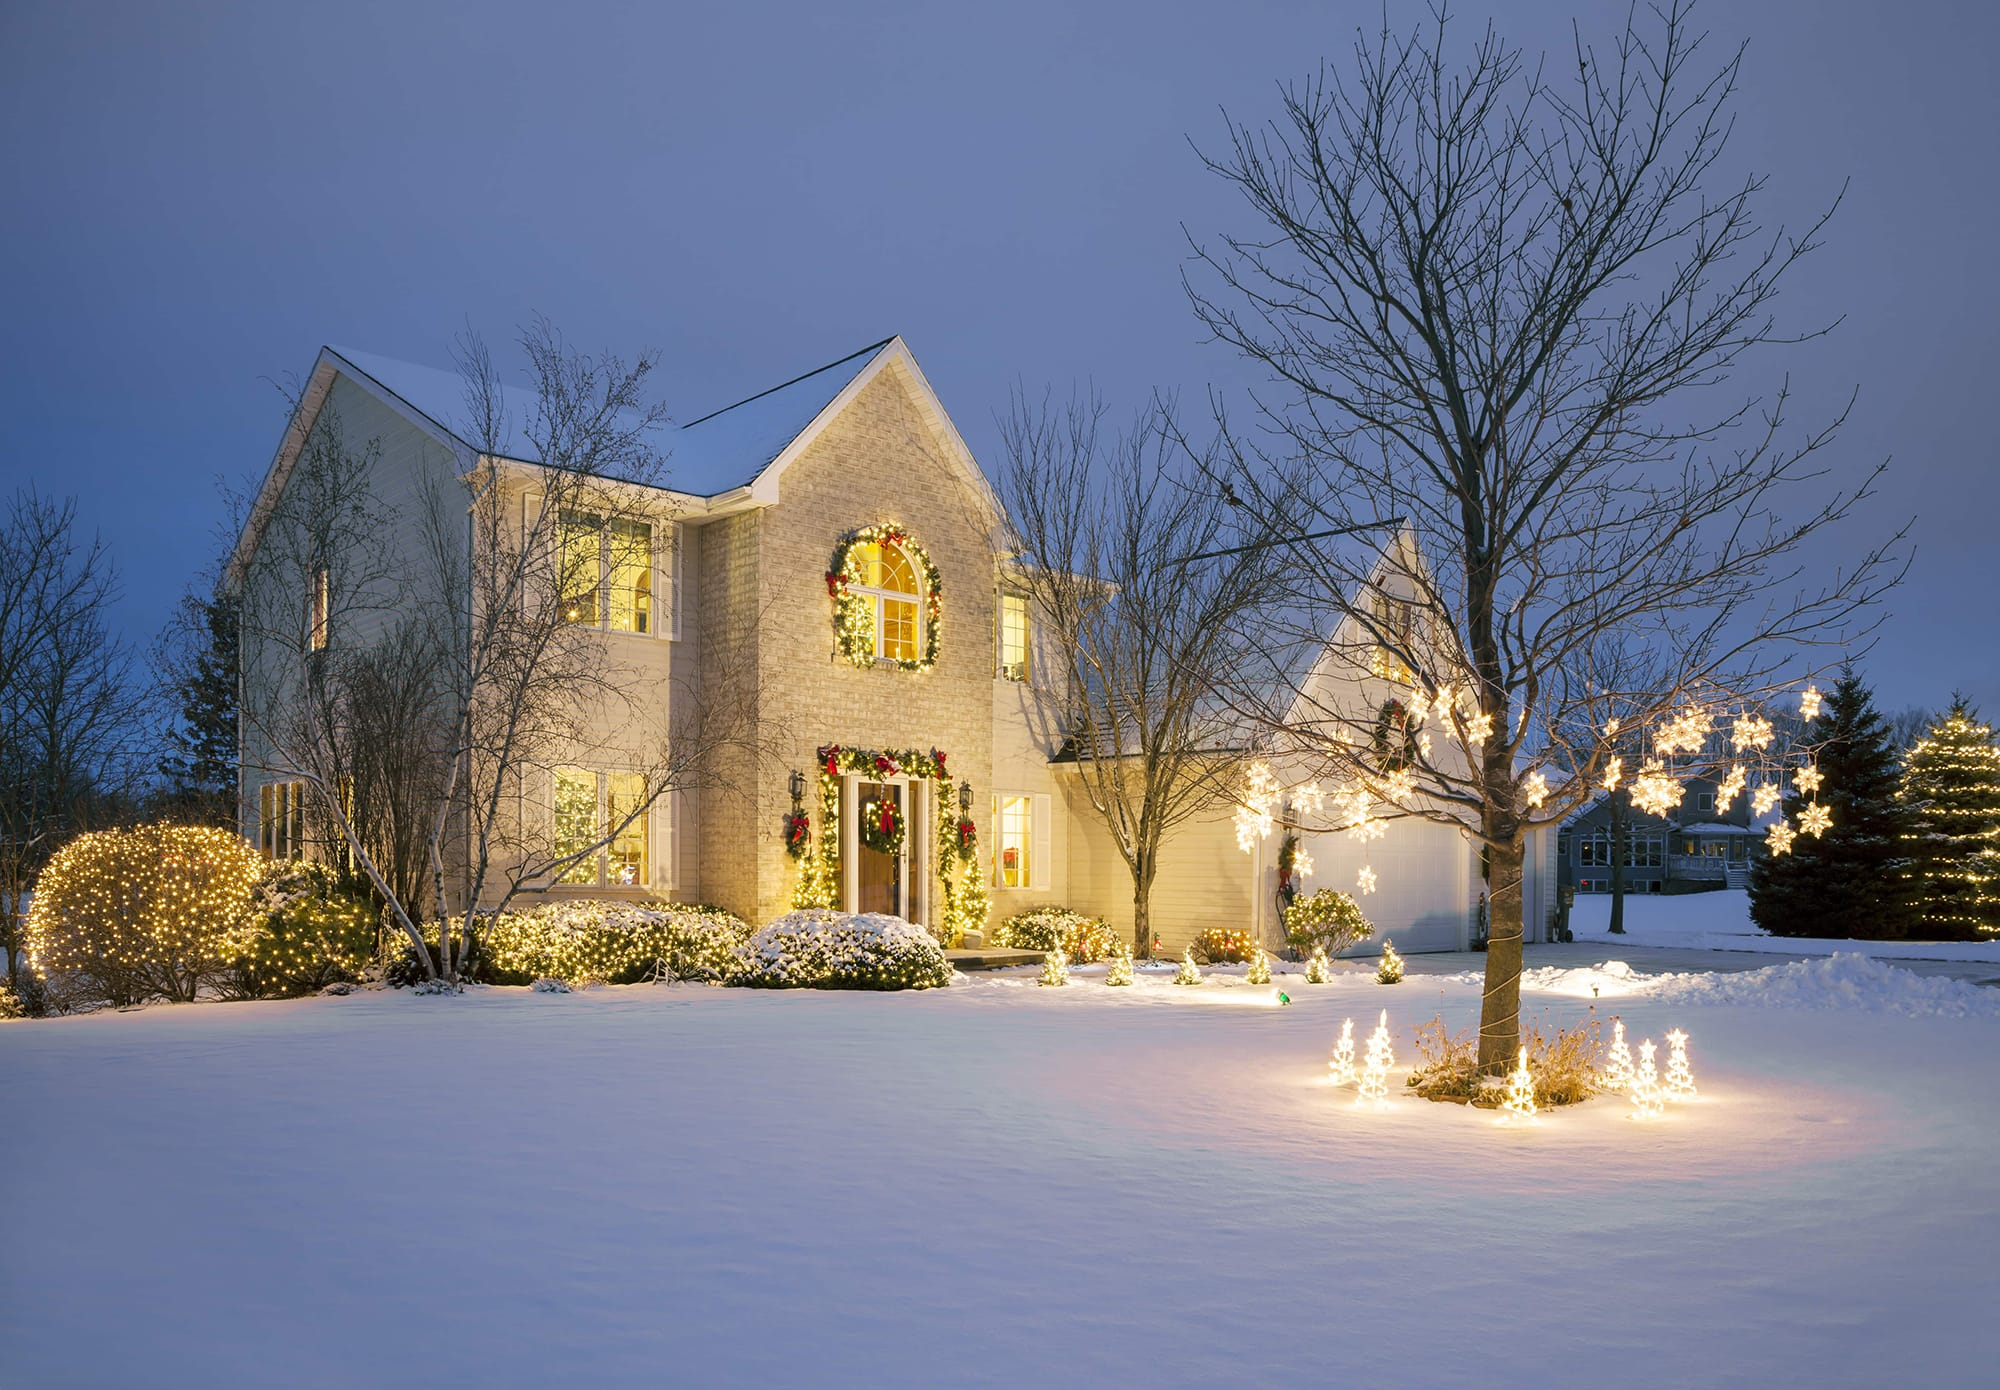 Real Estate Agent Holiday Tips: 12 Stunning Christmas Displays